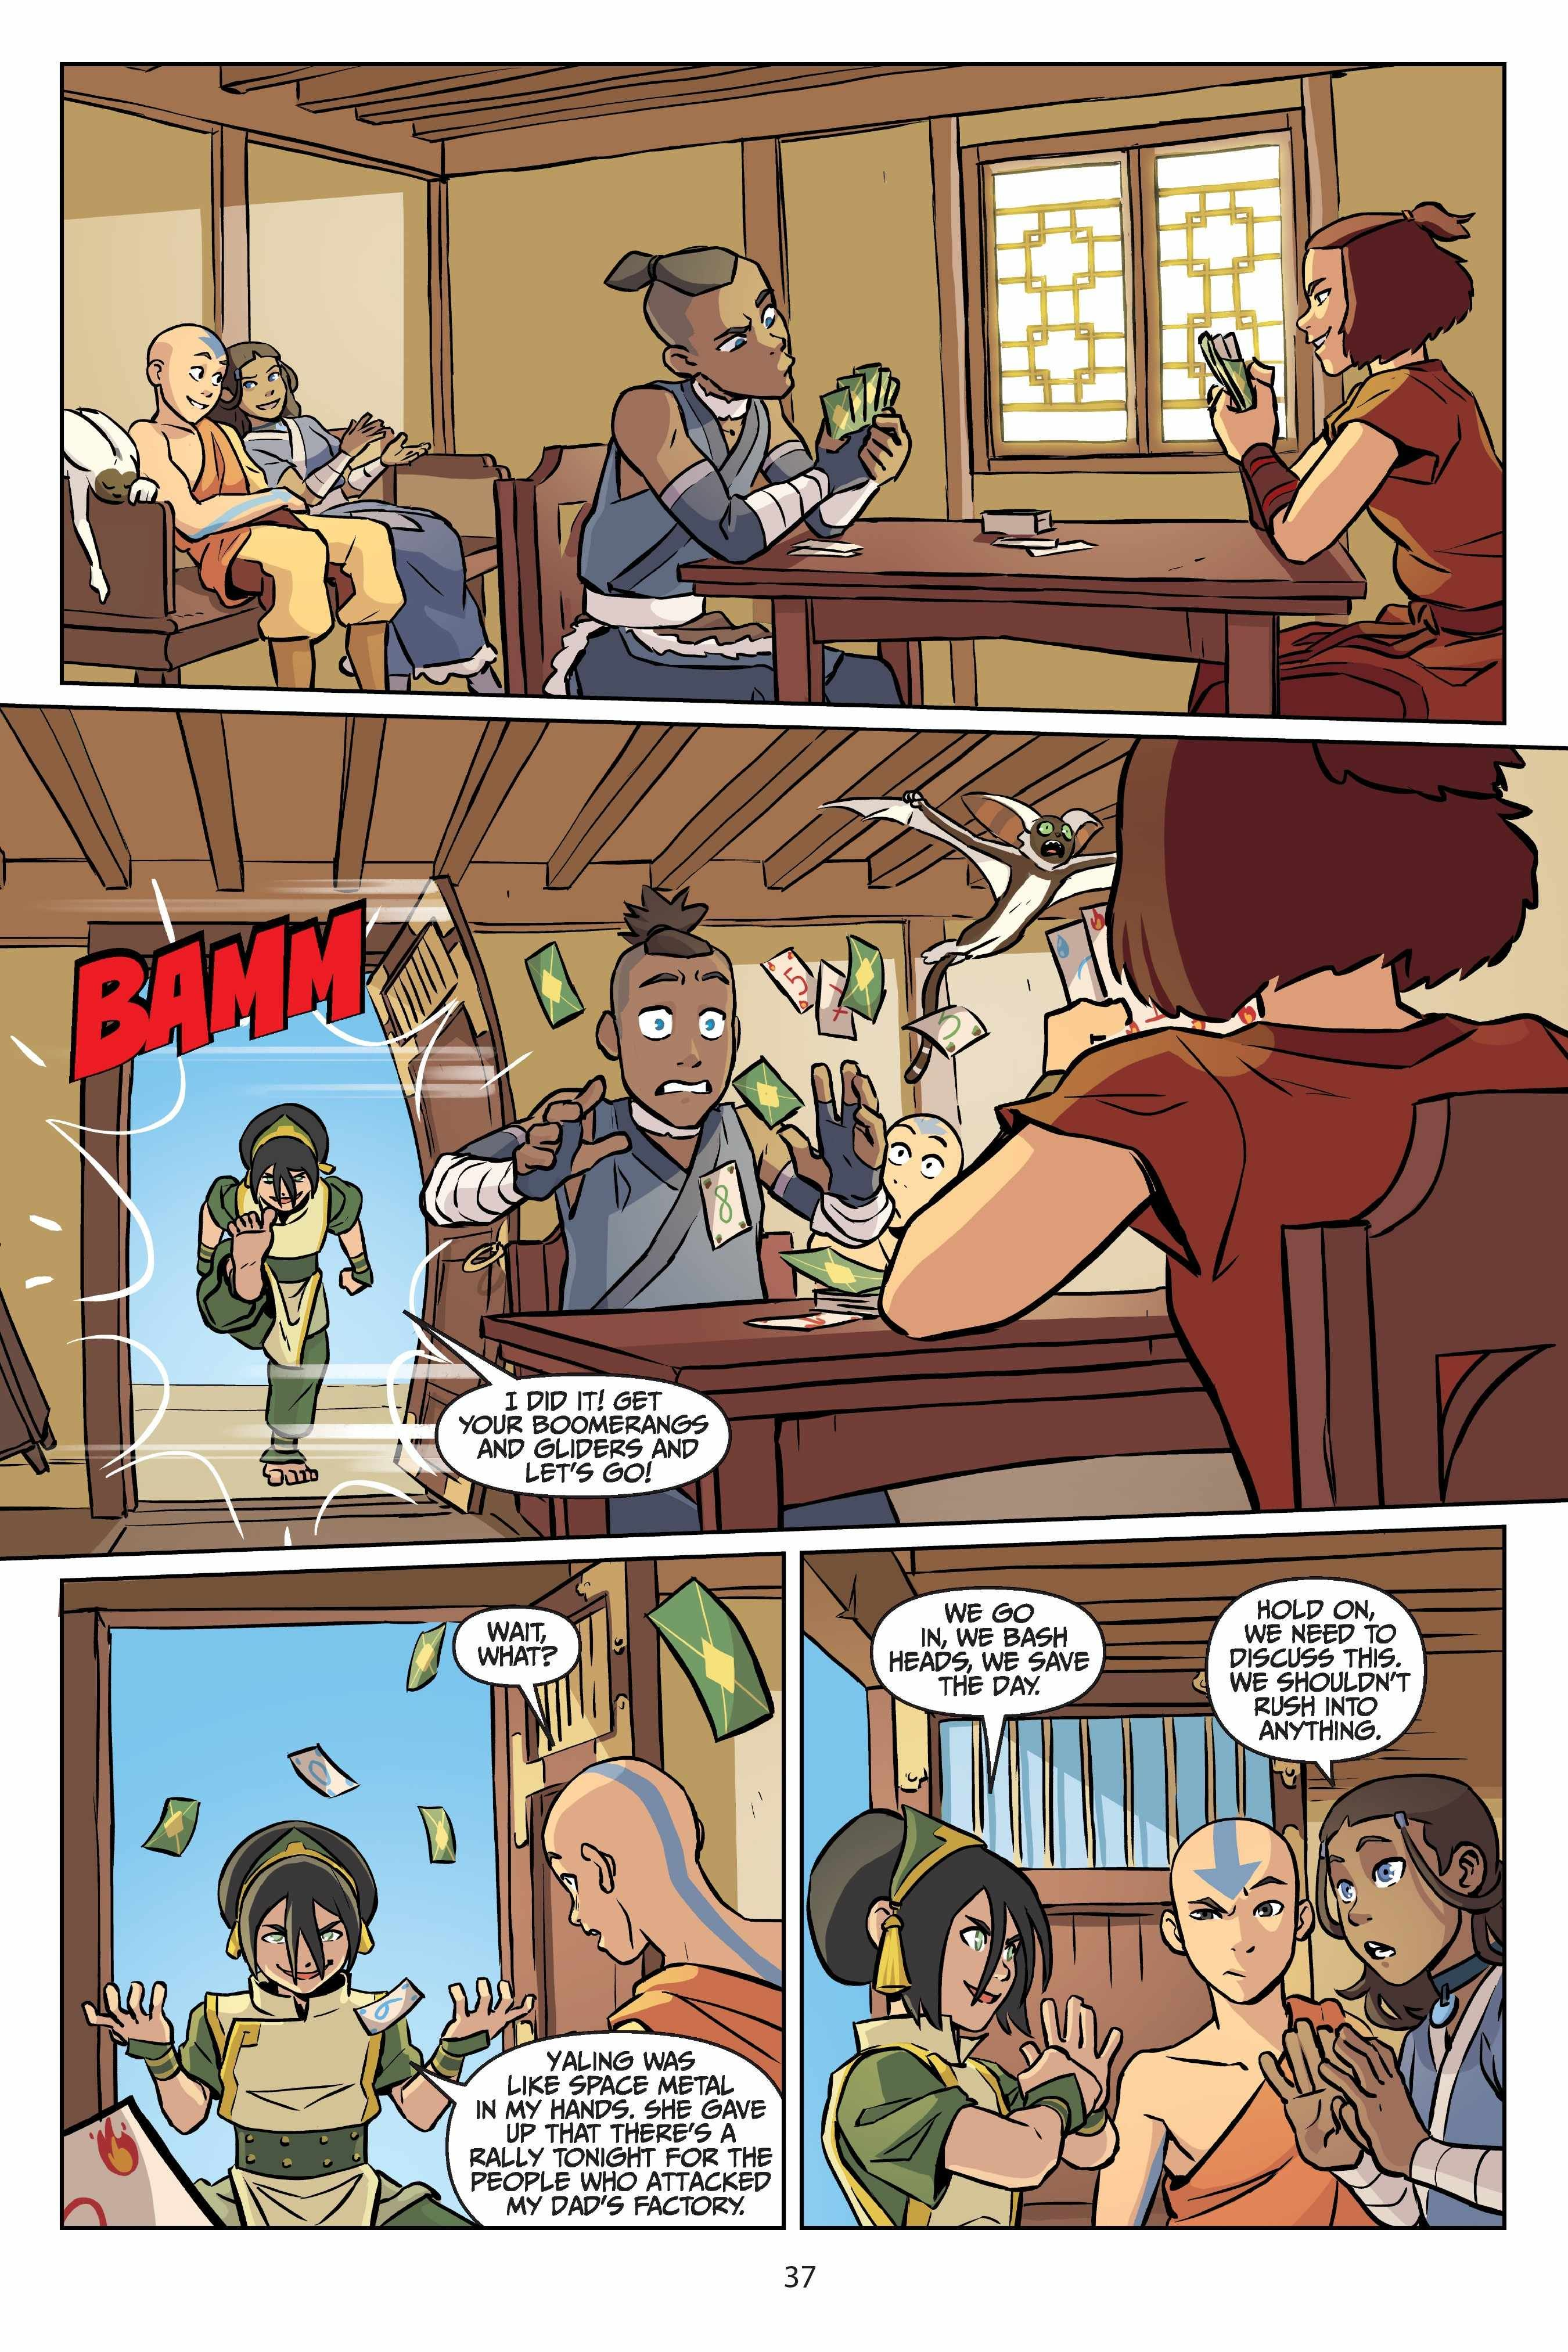 Read Comics Online Free Avatar The Last Airbender Comic Book Issue 025 Page 38 In 2020 Avatar Cartoon Avatar Funny Avatar